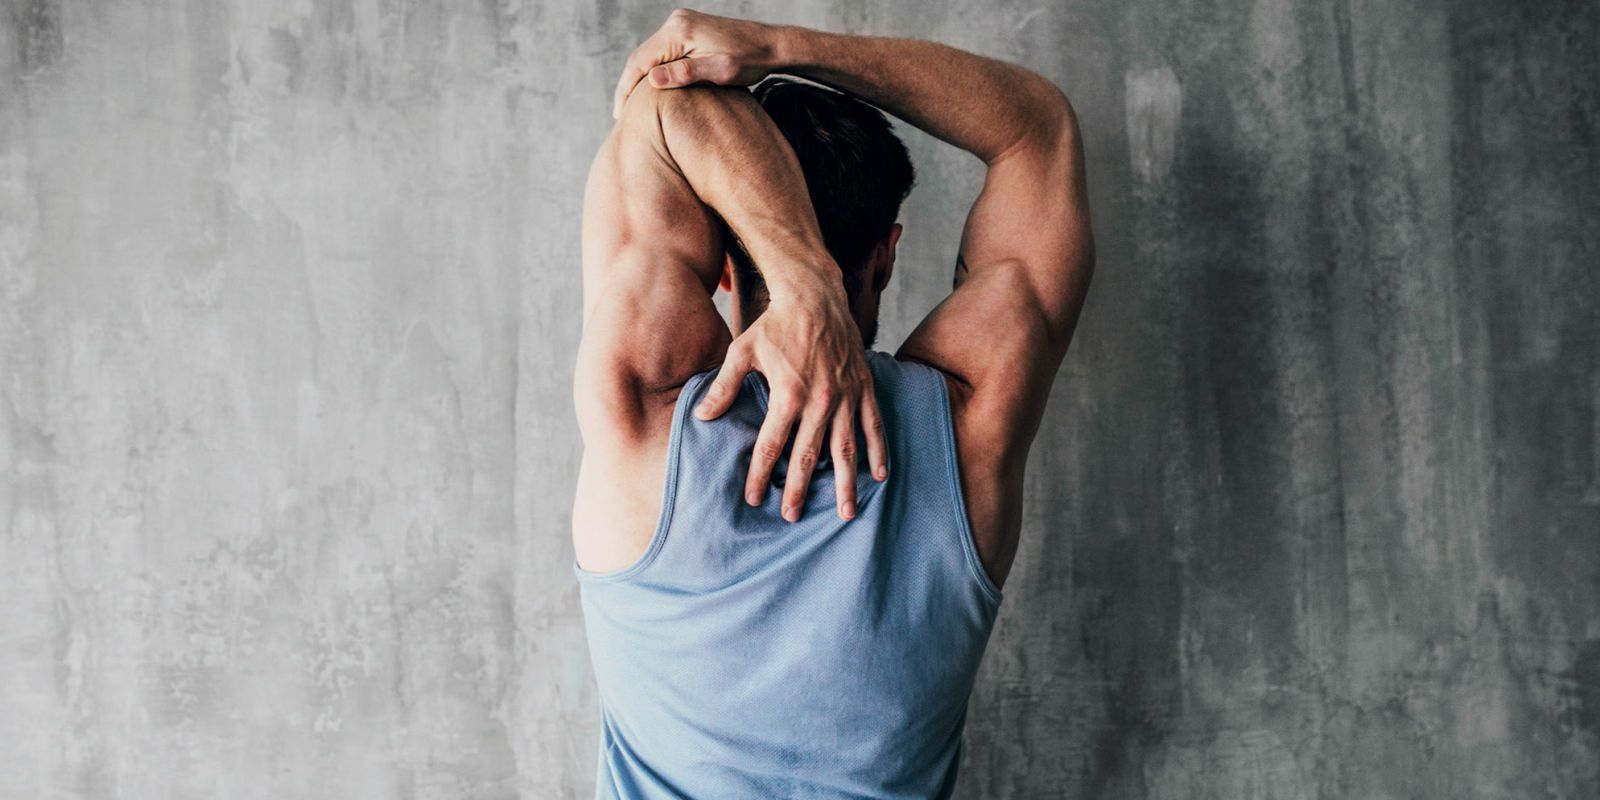 How to Fix Your Hunched Shoulders and Slouching Back in 6